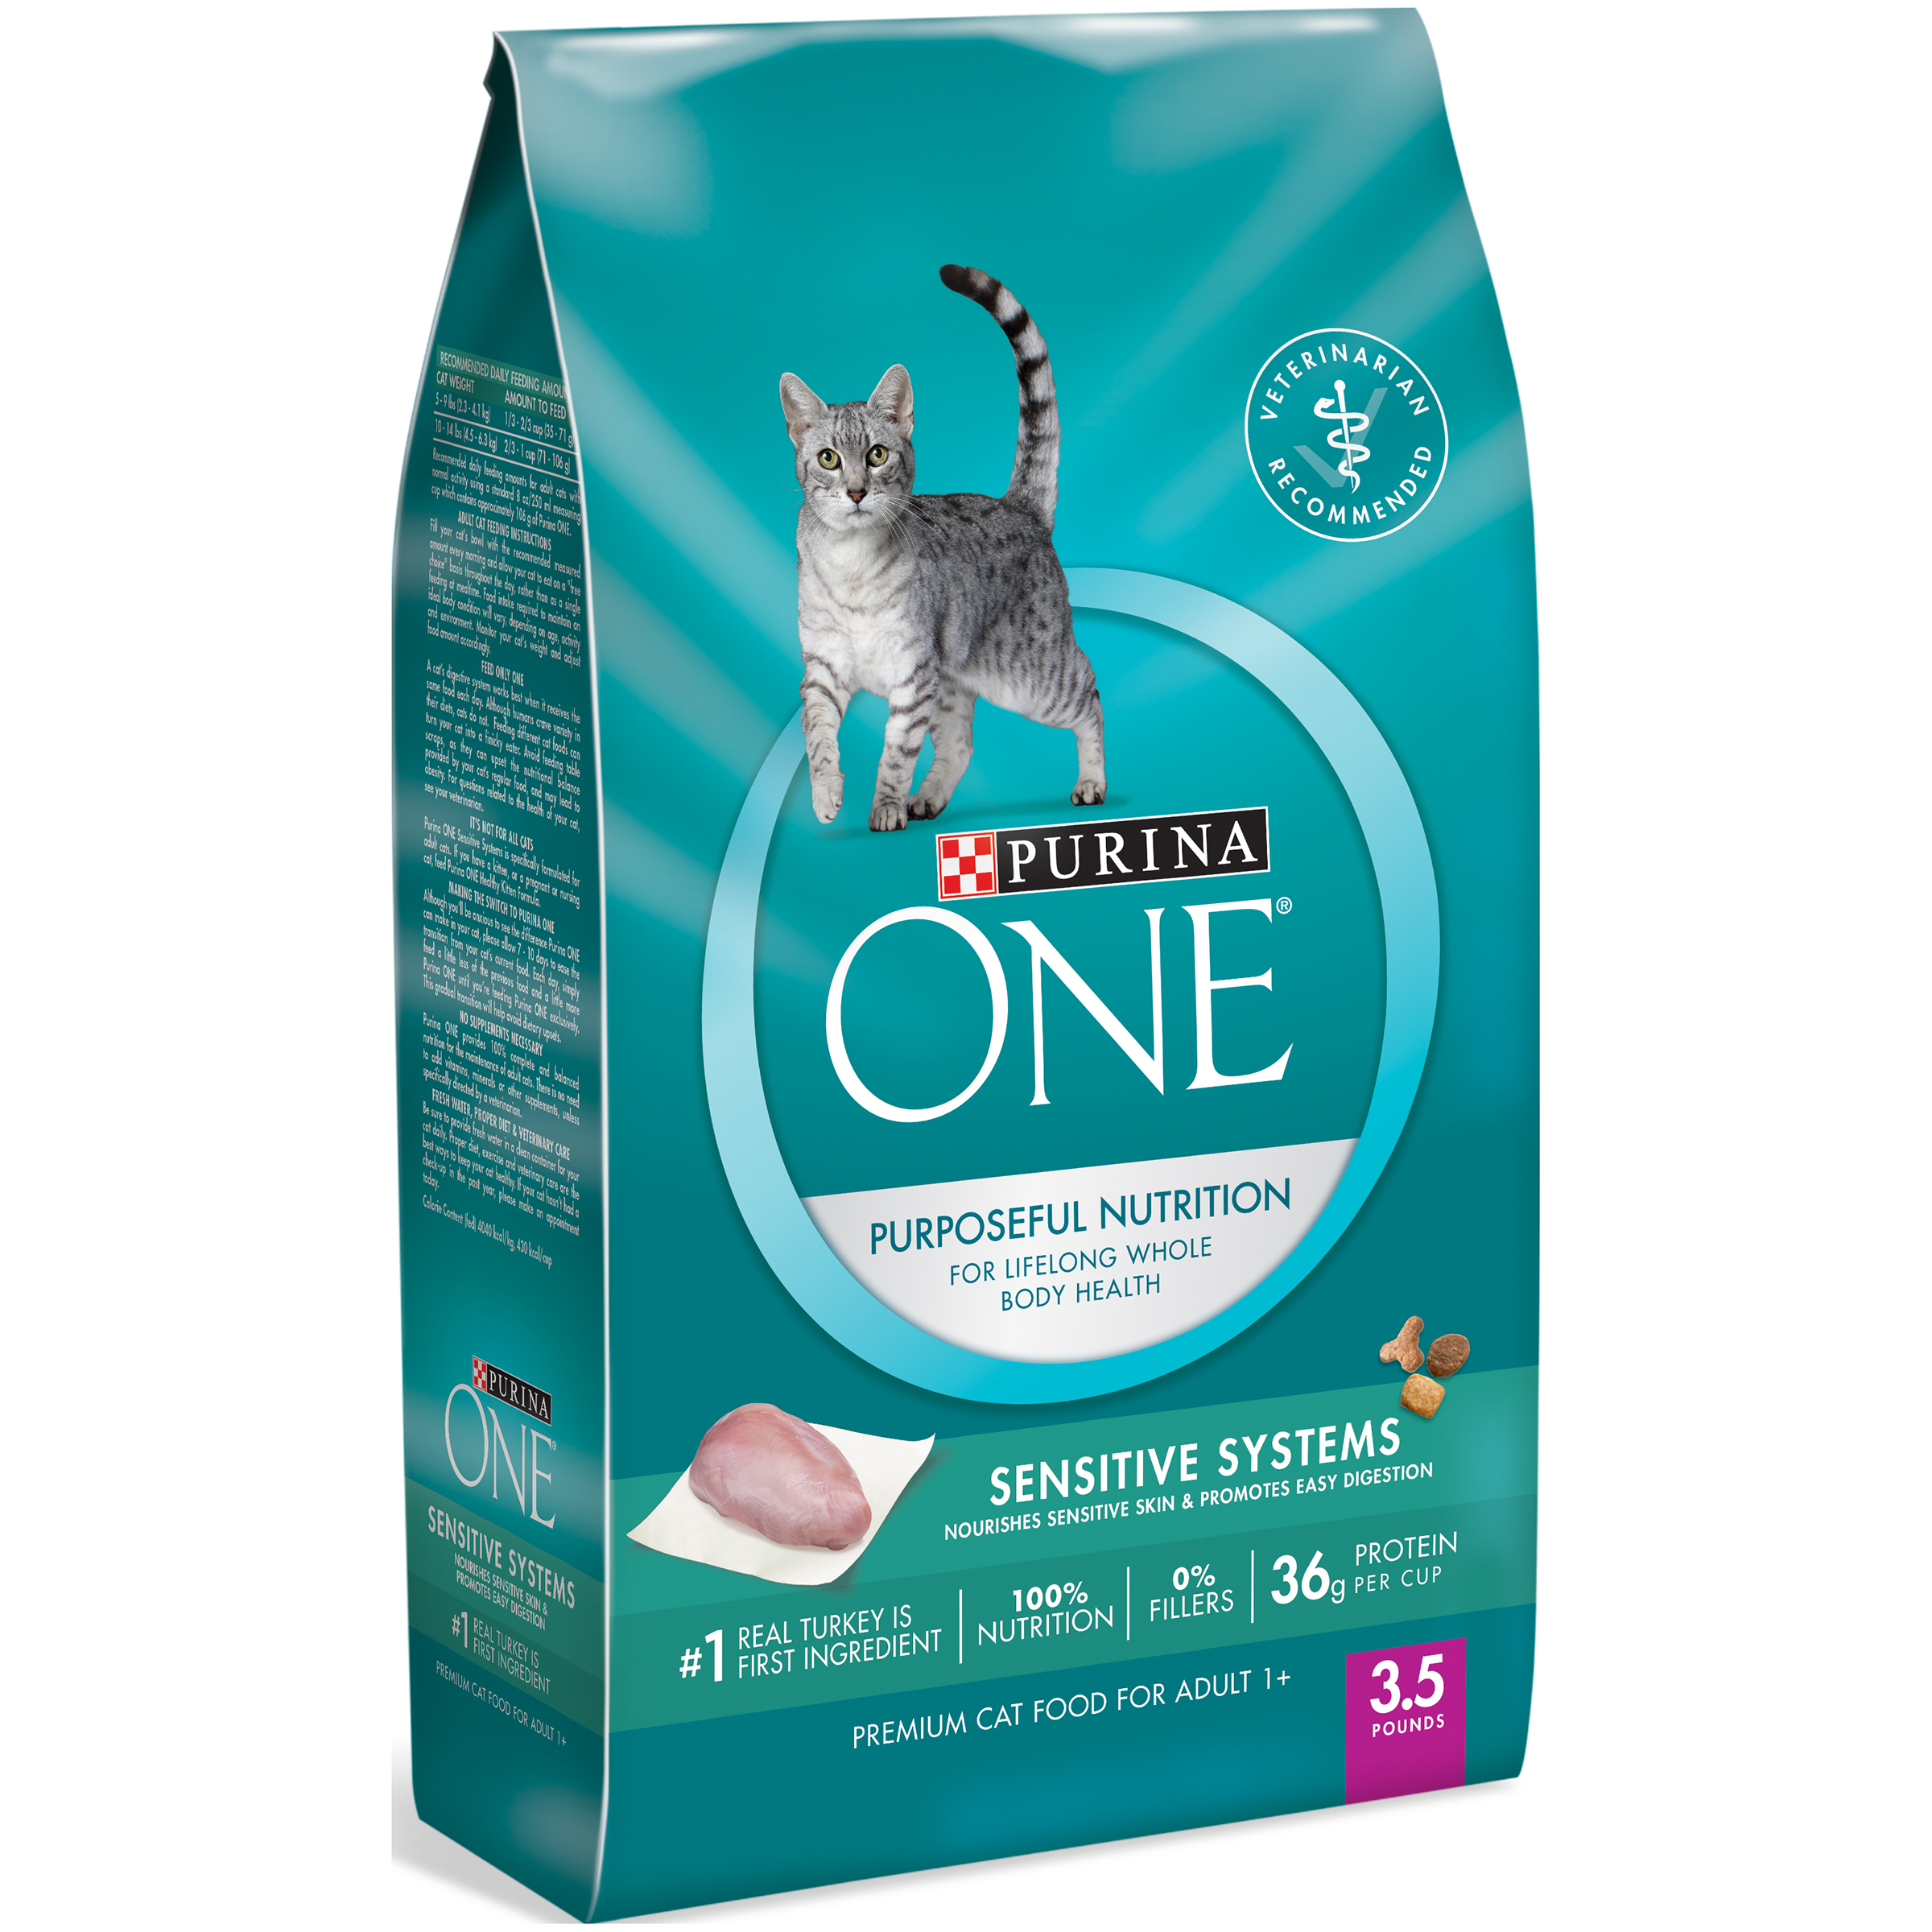 Purina ONE Sensitive Systems Adult Premium Cat Food 3.5 lb. Bag